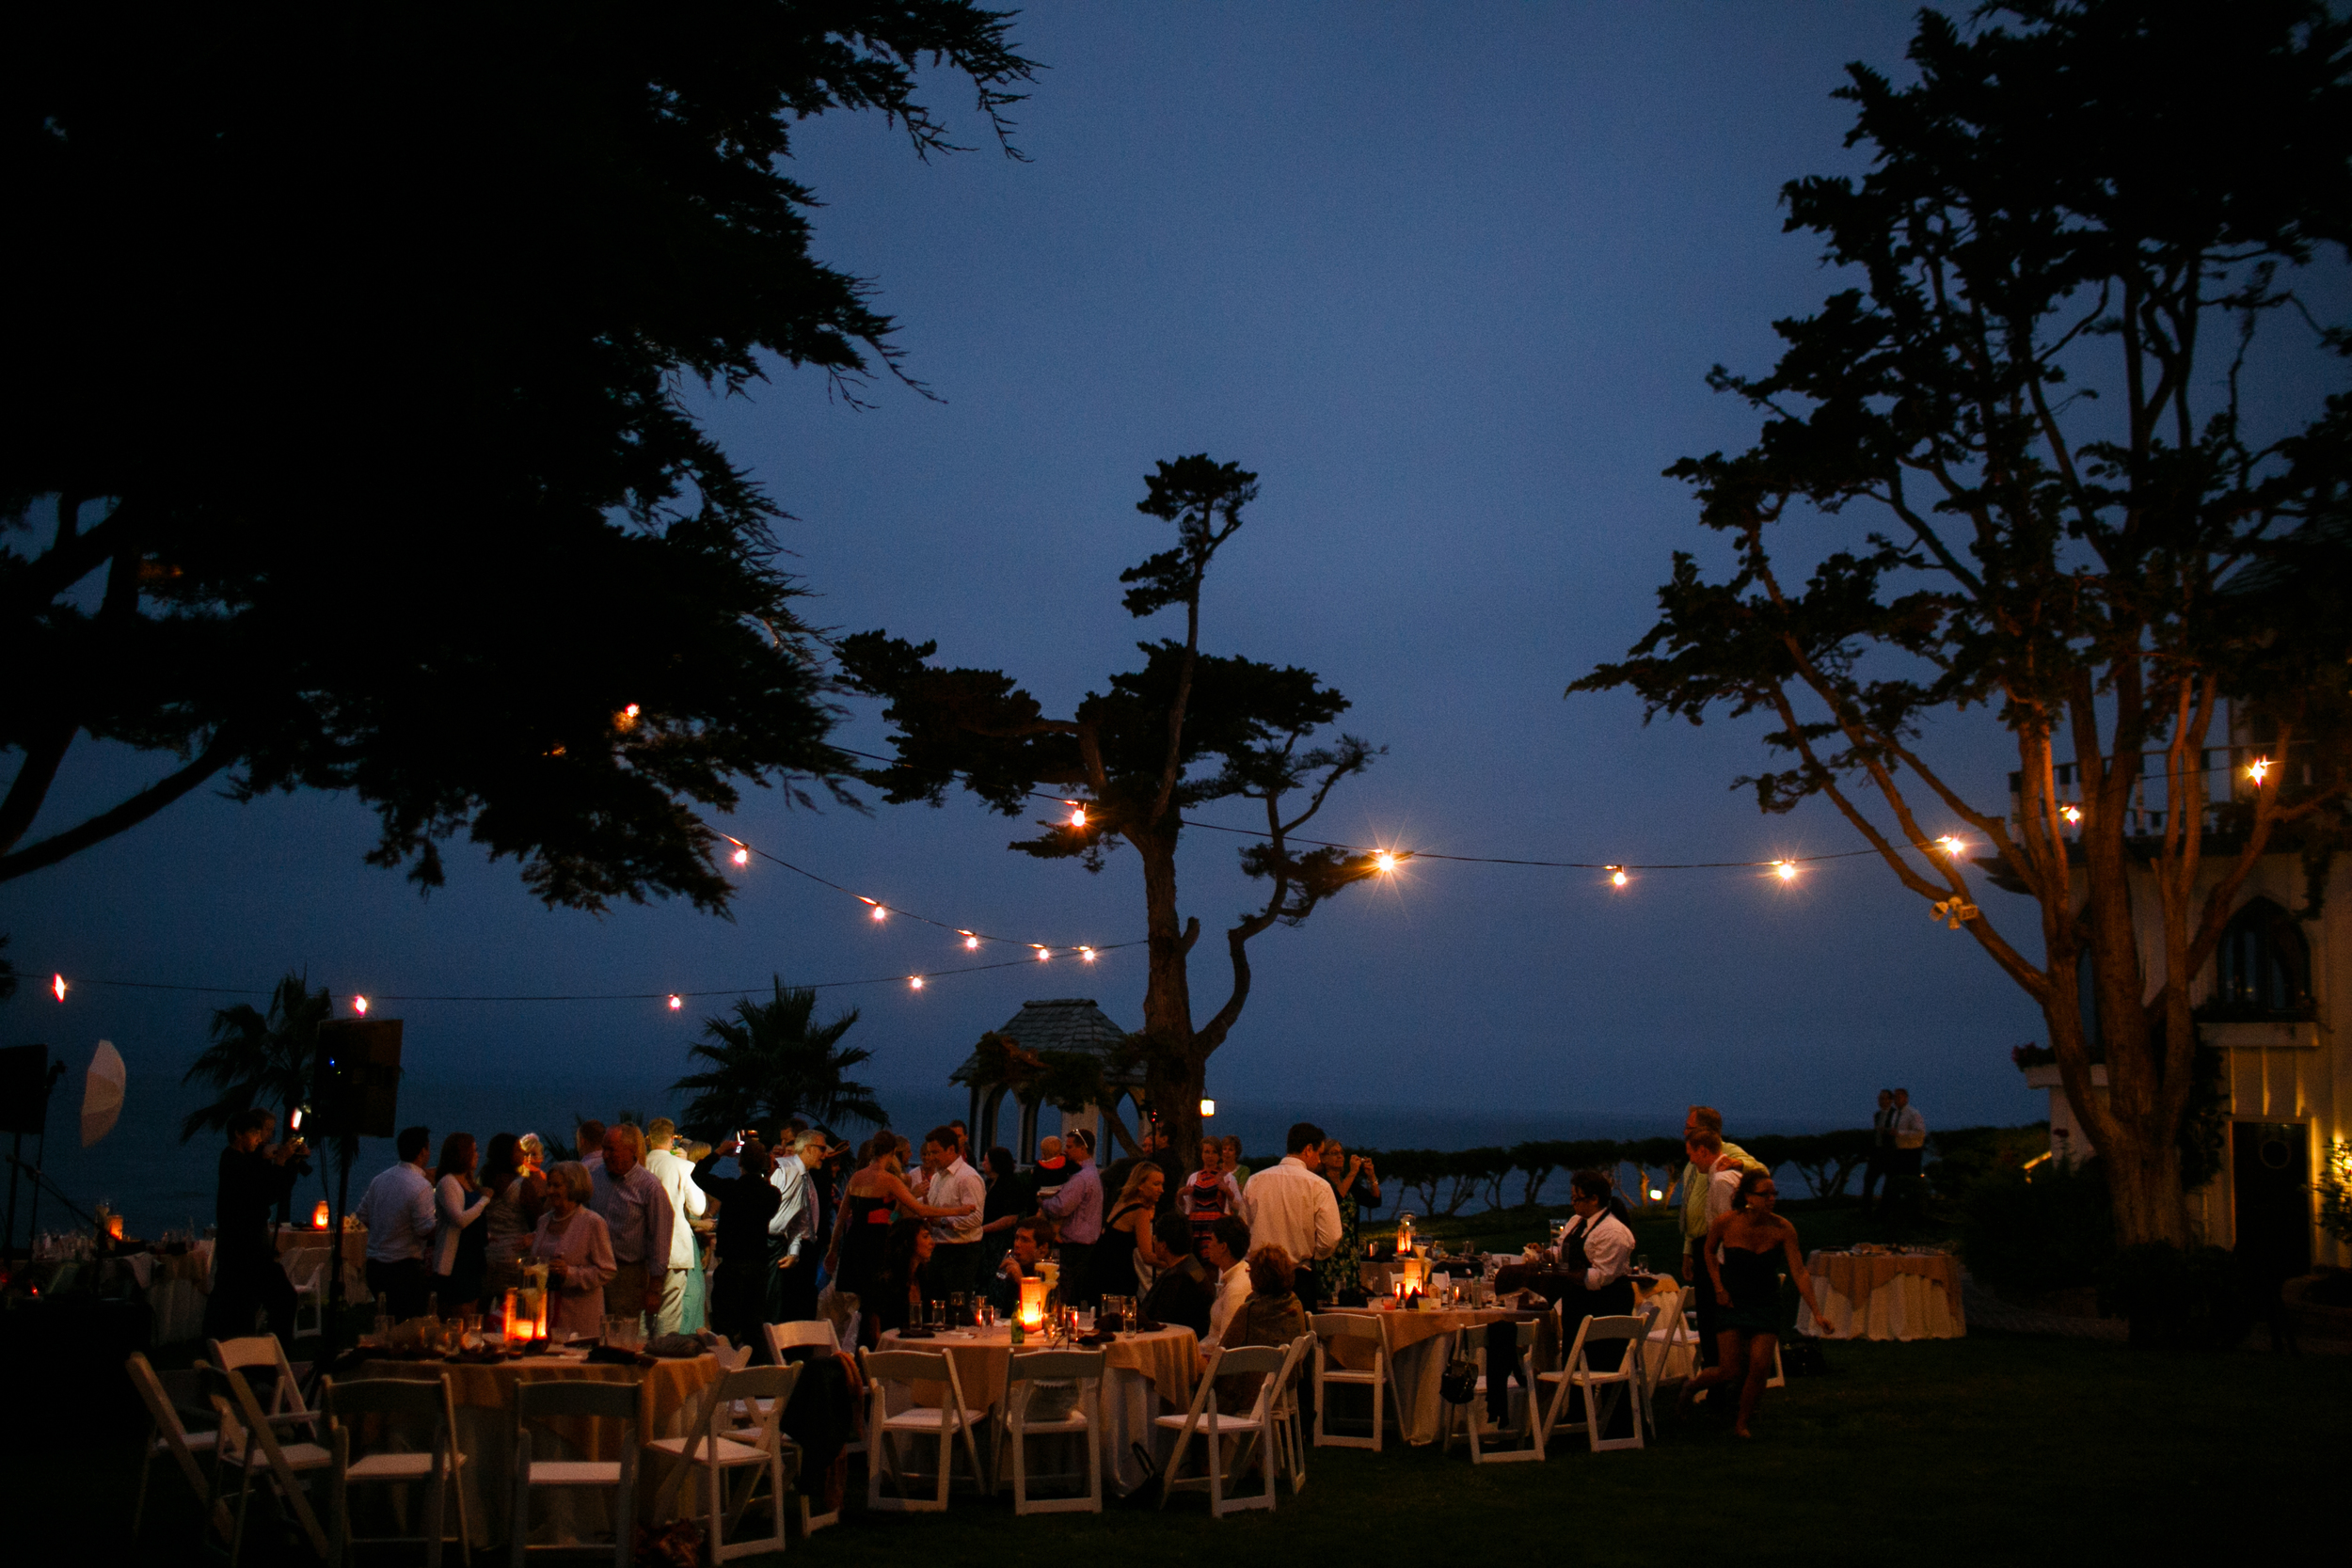 NYC-Wedding-Planner-Andrea-Freeman-Events-Malibu-Private-Estate-20.jpg